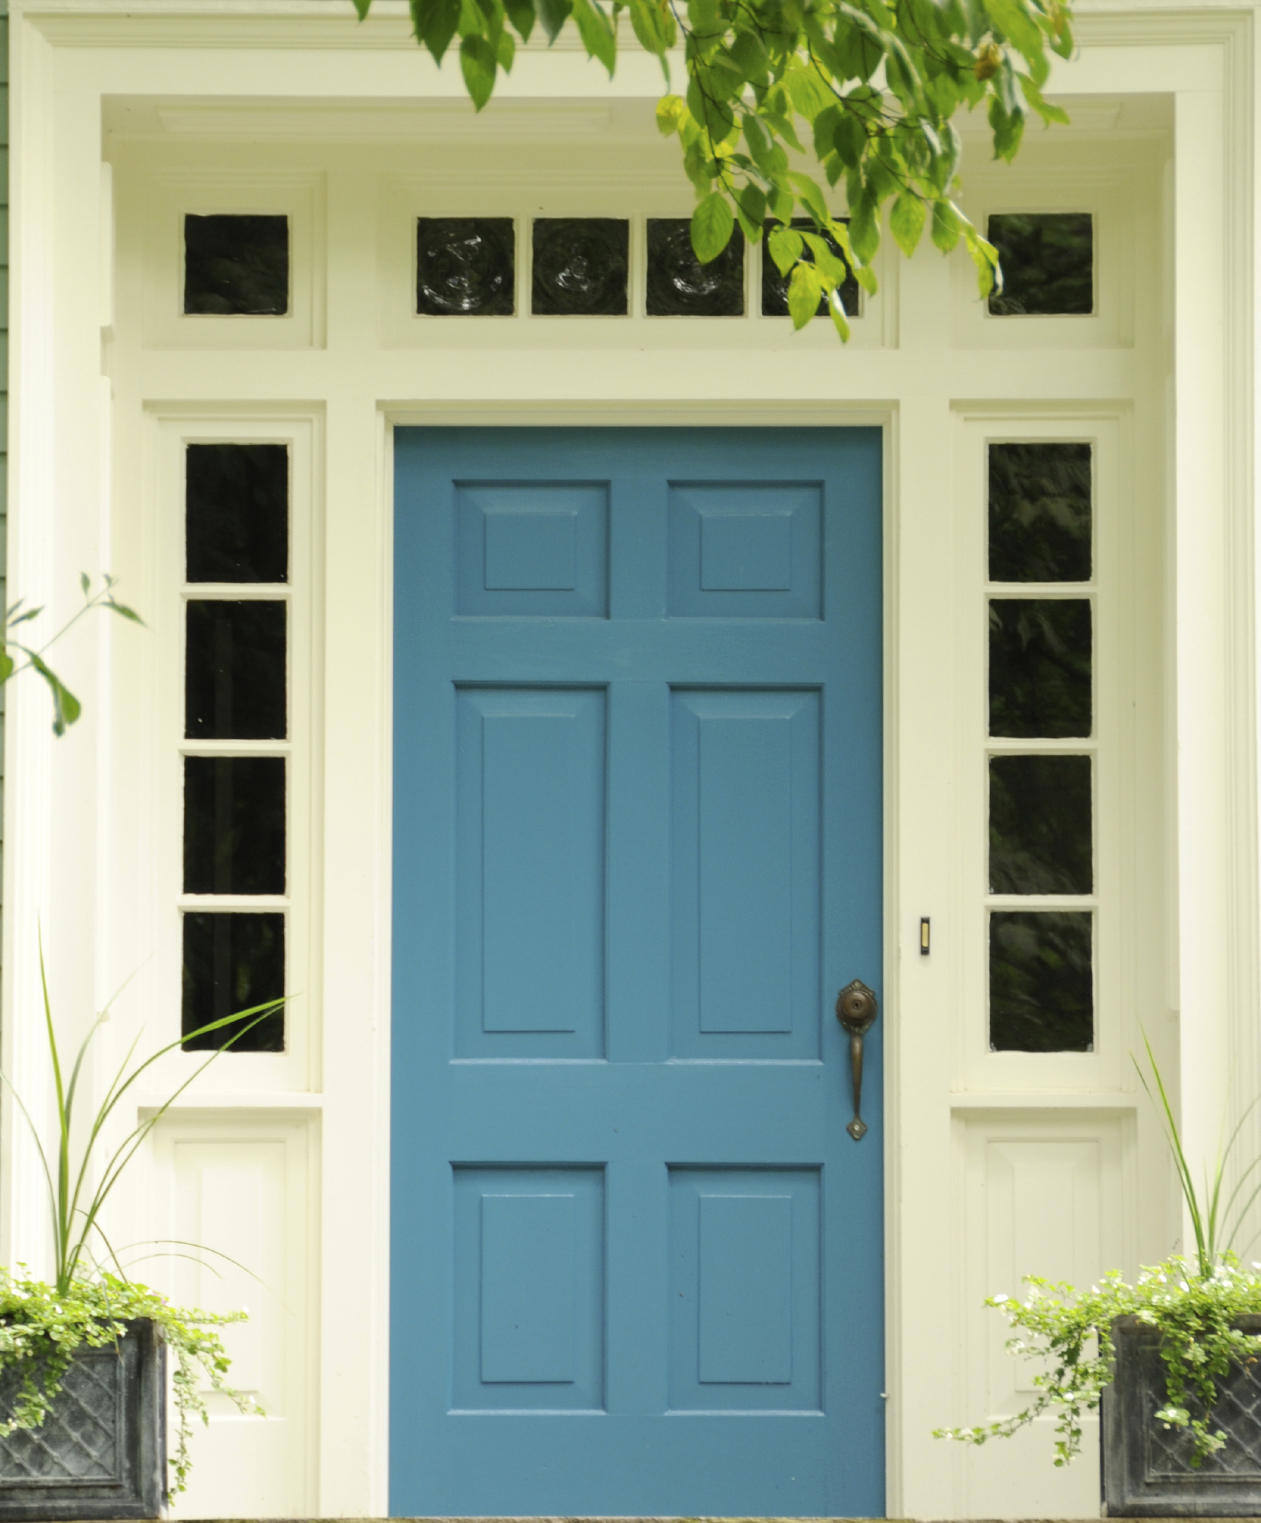 21 cool blue front doors for residential homes this blue front door has a brass key entrance door knob and a brass handle rubansaba